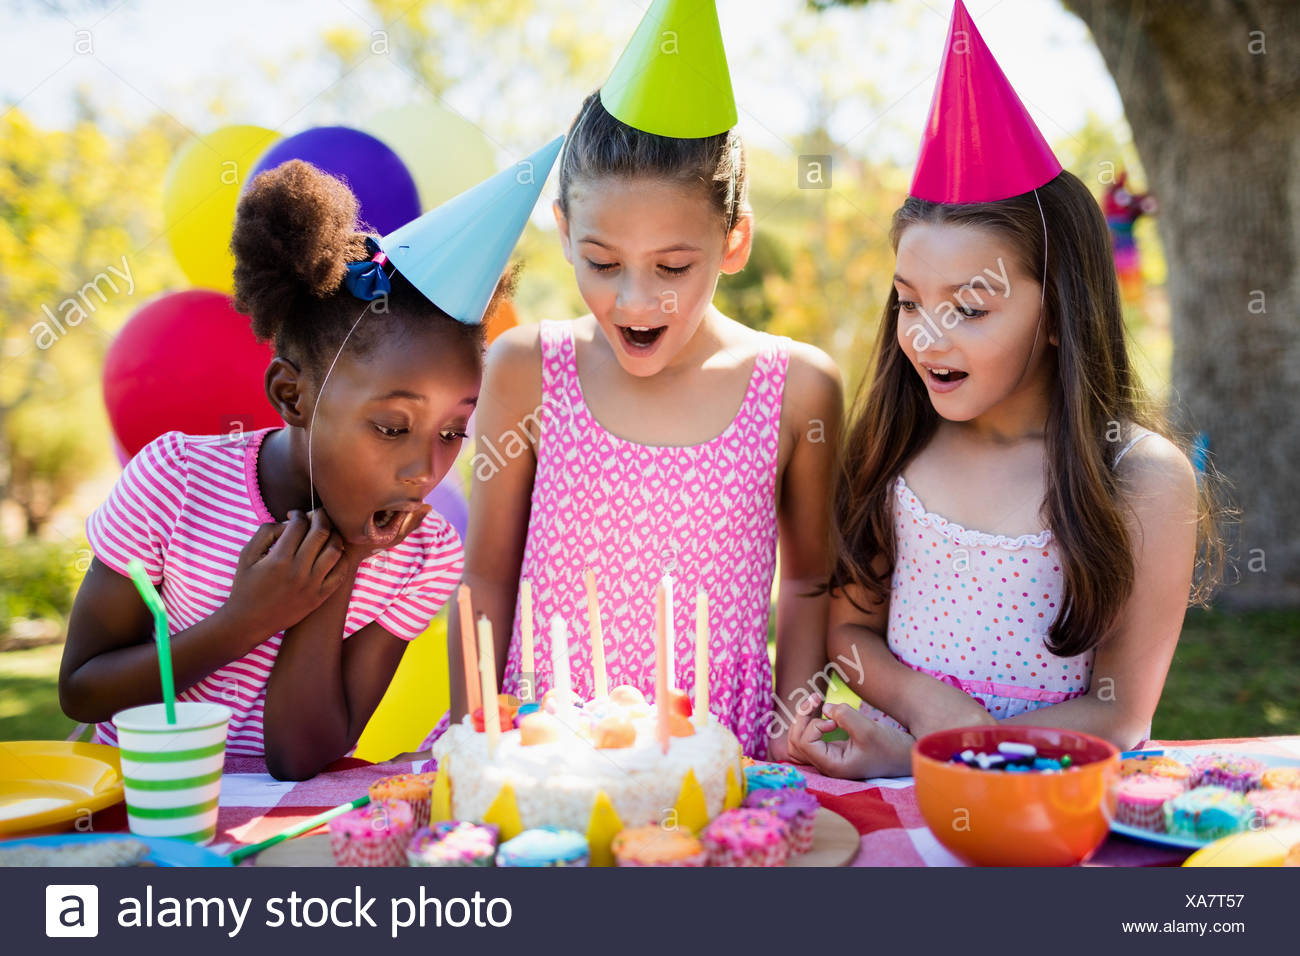 Portrait of cute girls preparing to blow on candle during a birthday party - Stock Image